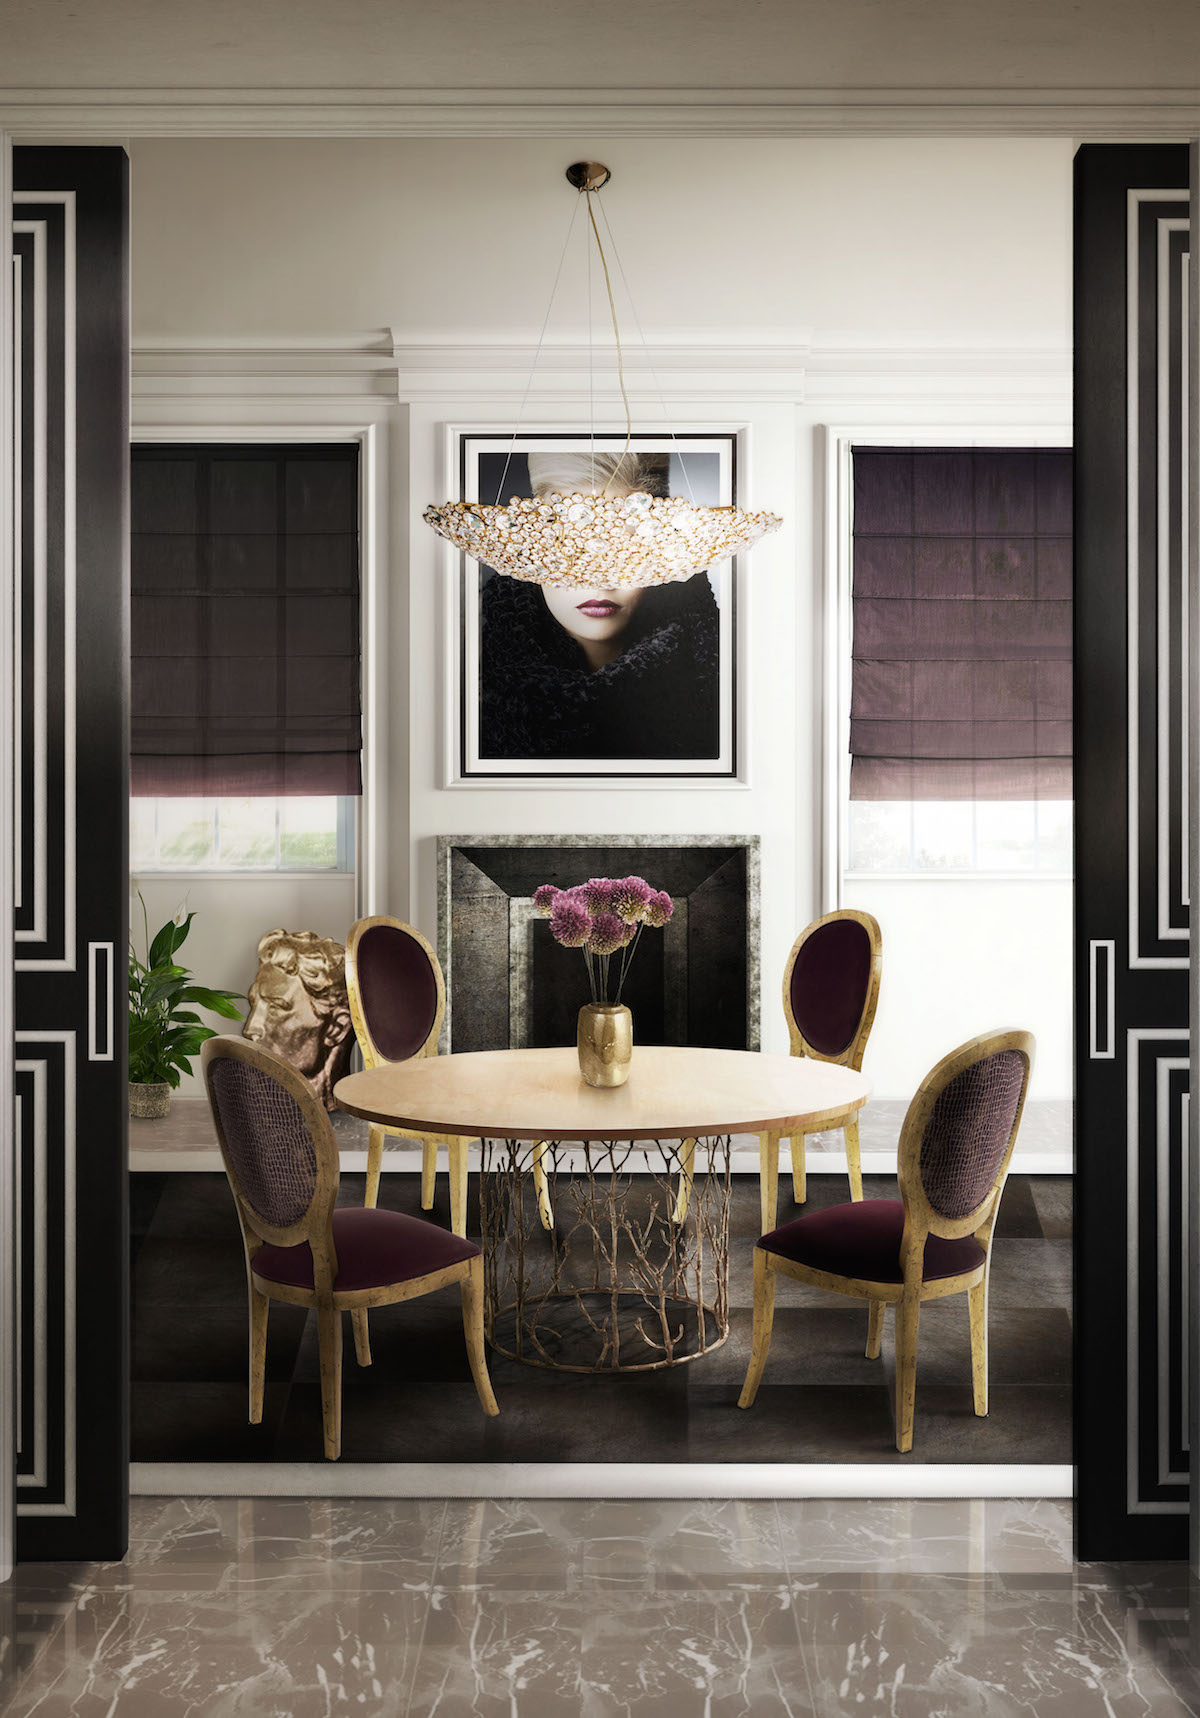 10 Ideas on How to Make Your Dining Room Designs Look Amazing5